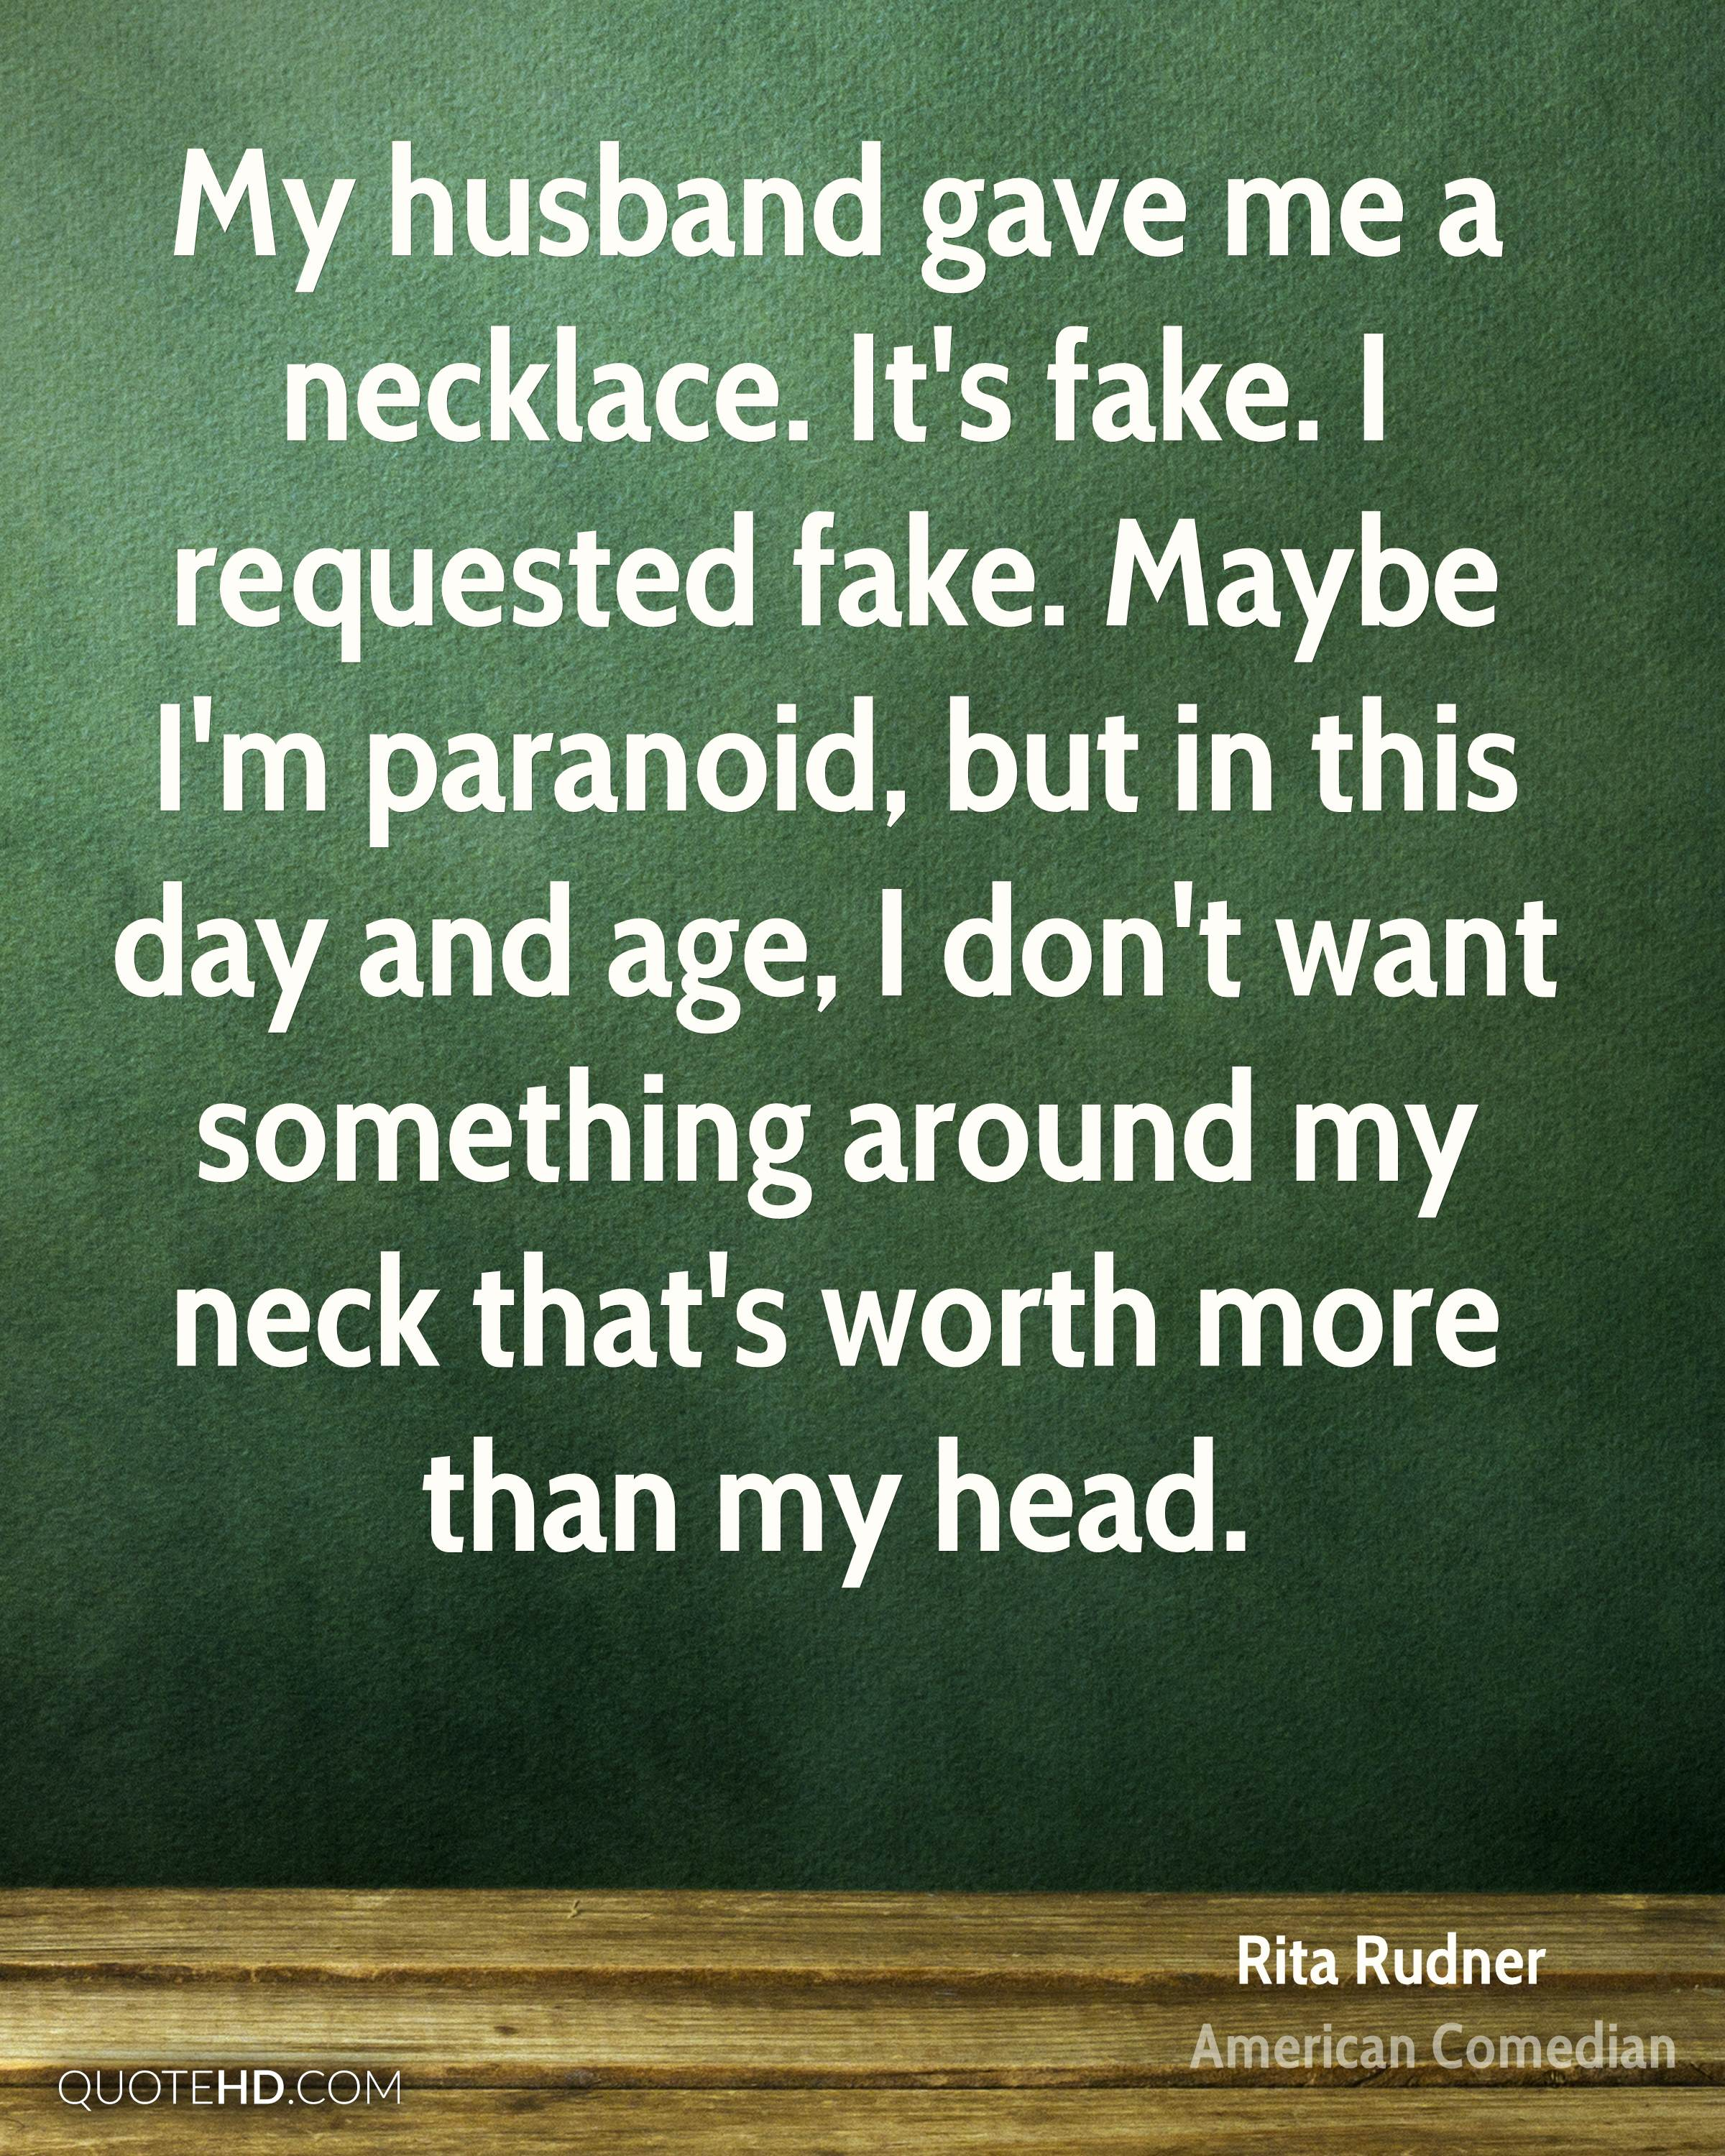 My husband gave me a necklace. It's fake. I requested fake. Maybe I'm paranoid, but in this day and age, I don't want something around my neck that's worth more than my head.